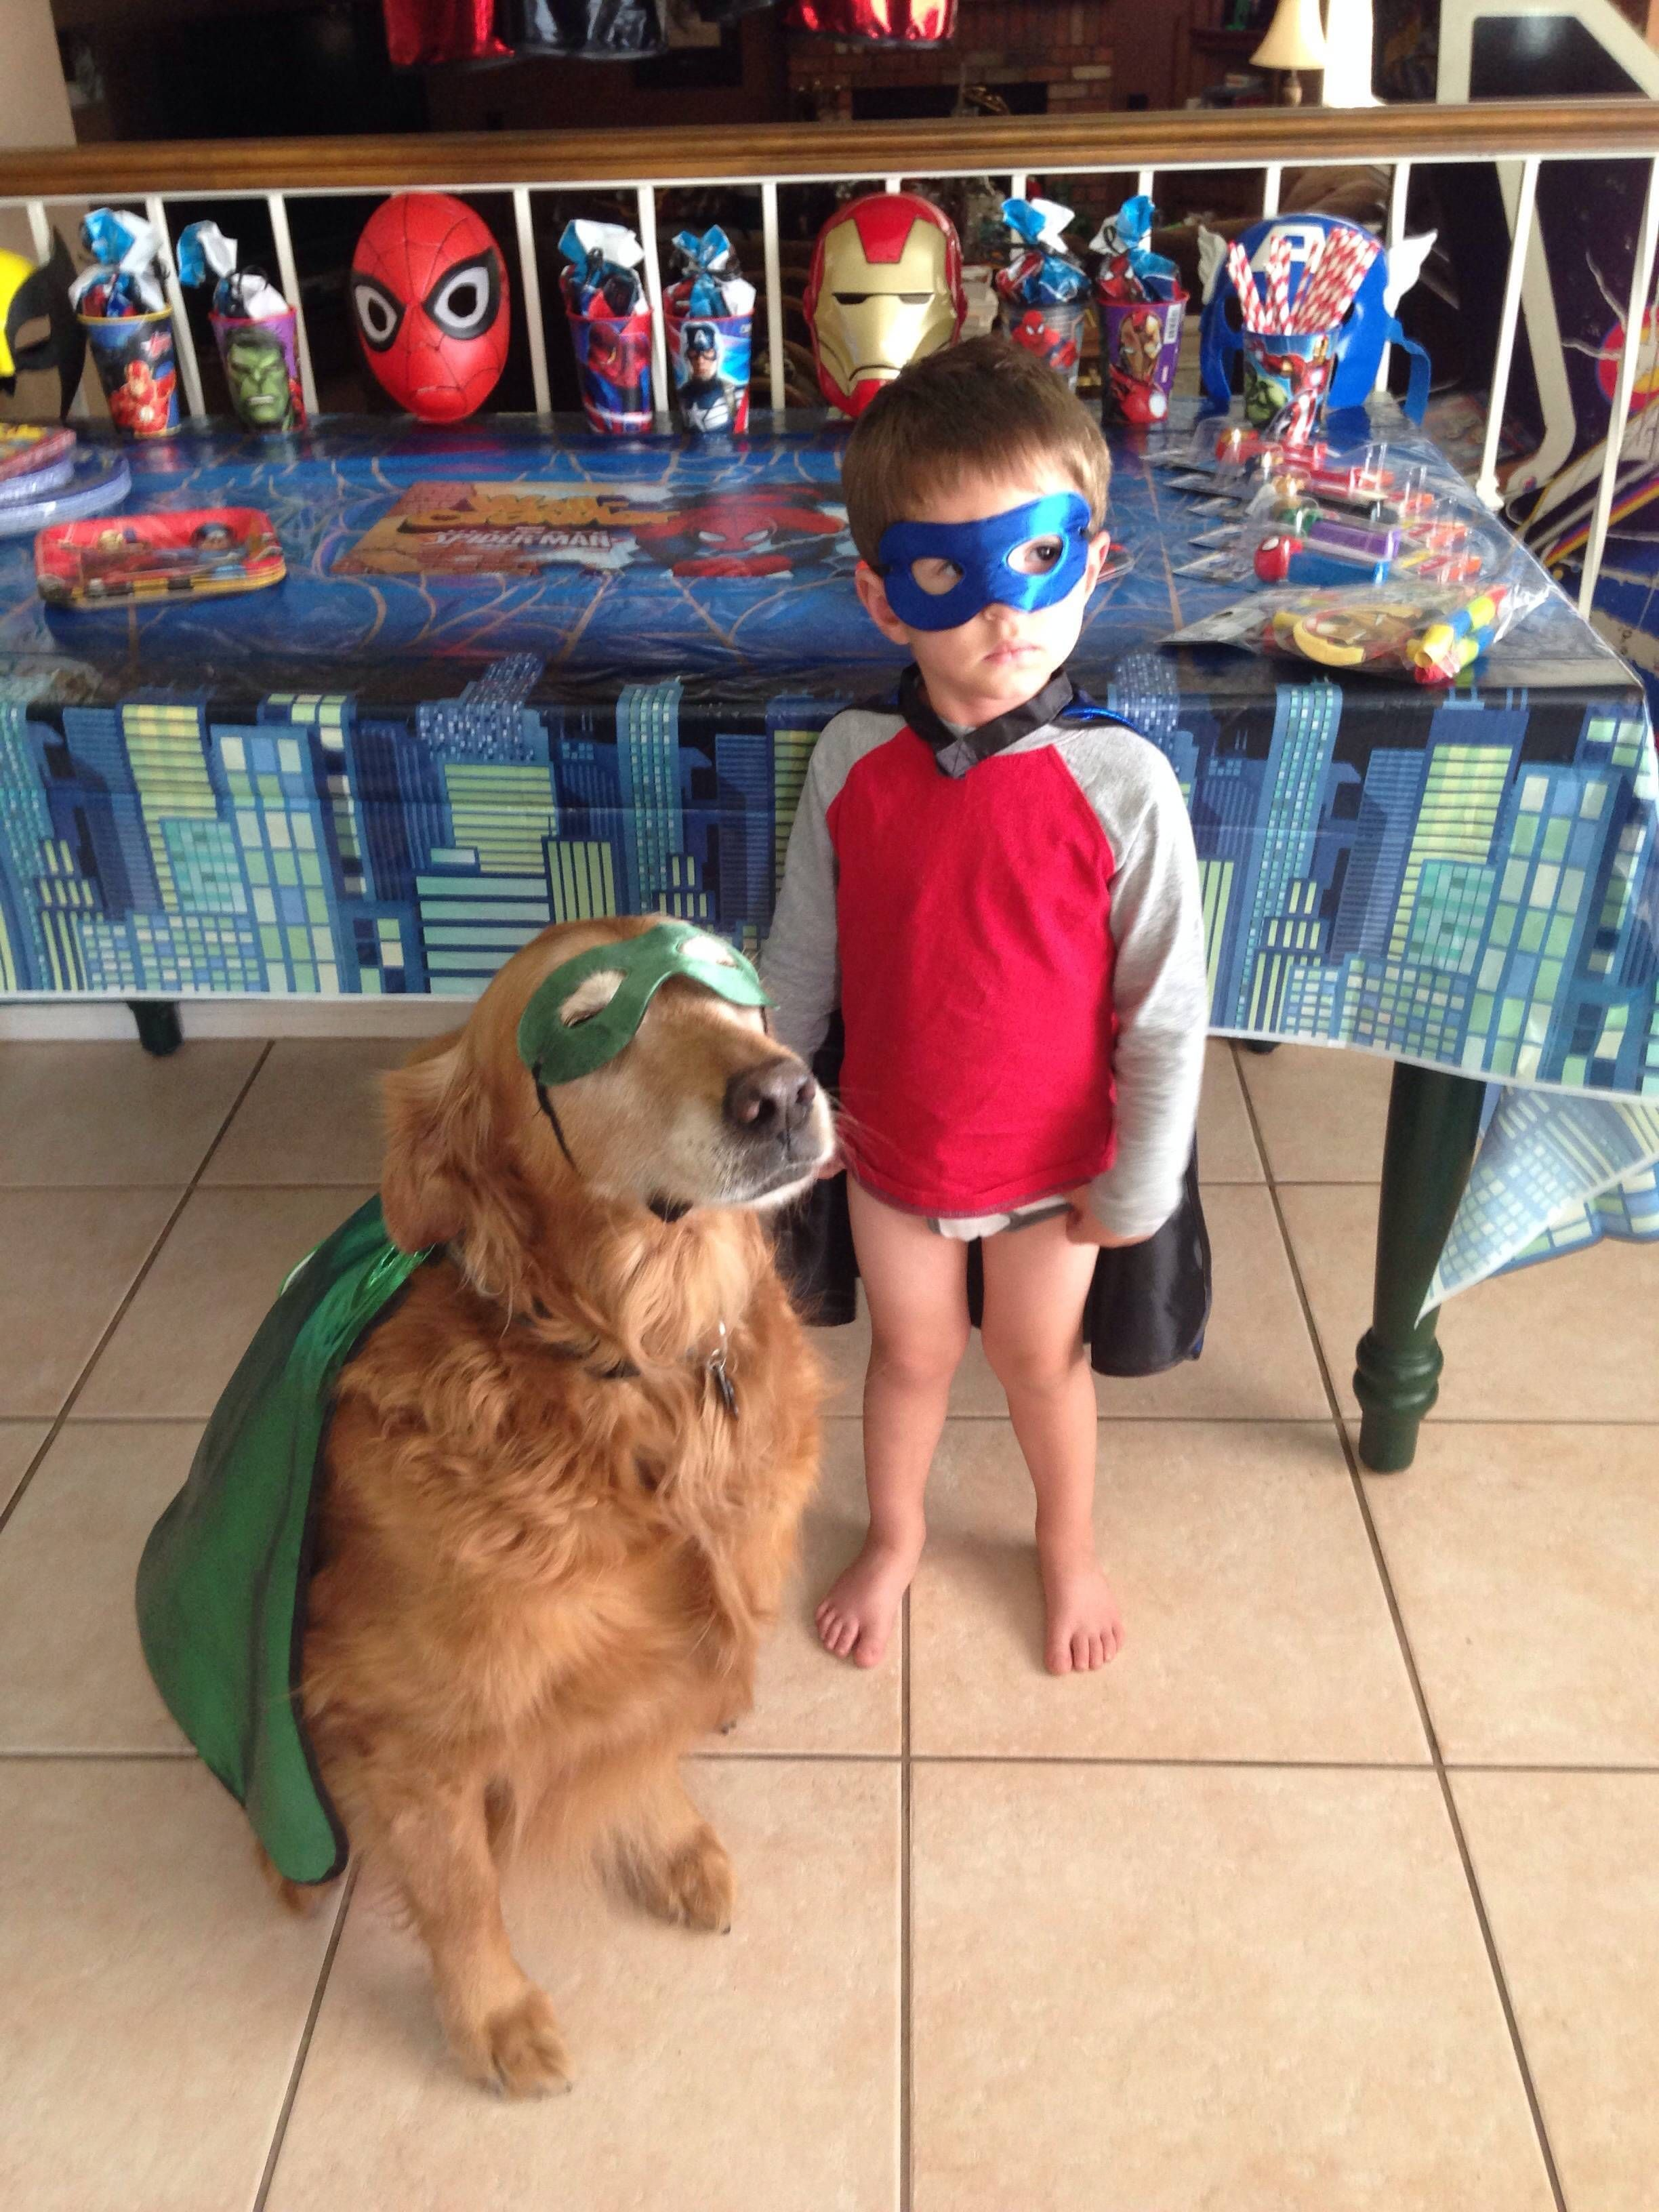 My 3 Year Old Son And His 12 Year Old Best Friend At His Birthday Party Post Happy Dogs Cute Animals Cute Dogs Breeds